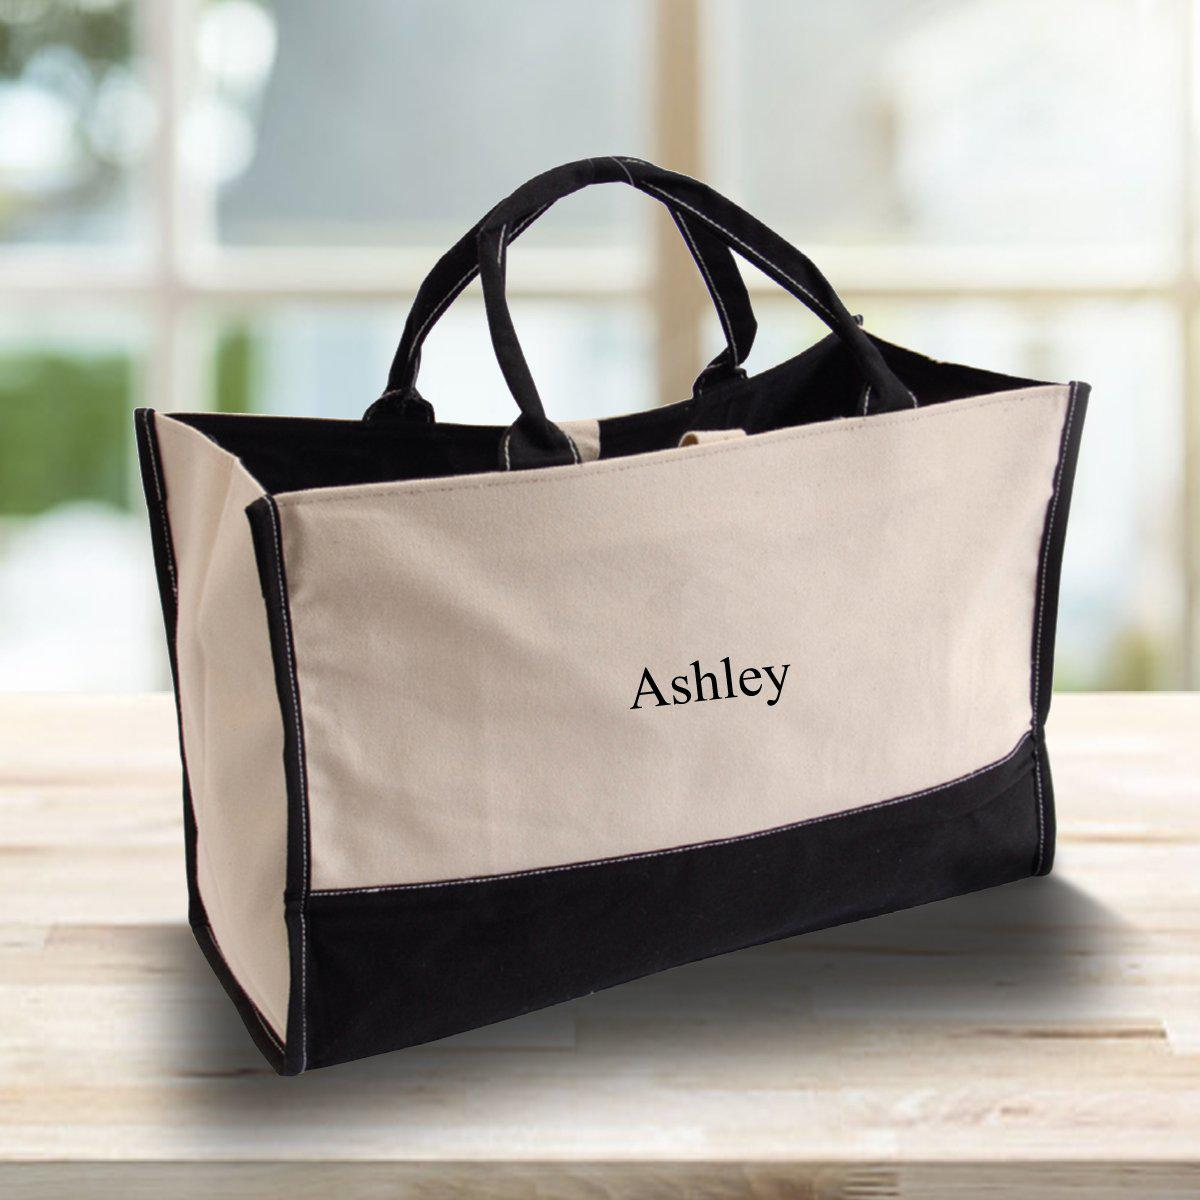 Personalized Tote Bag - Canvas - Embroidered - Summer Bag